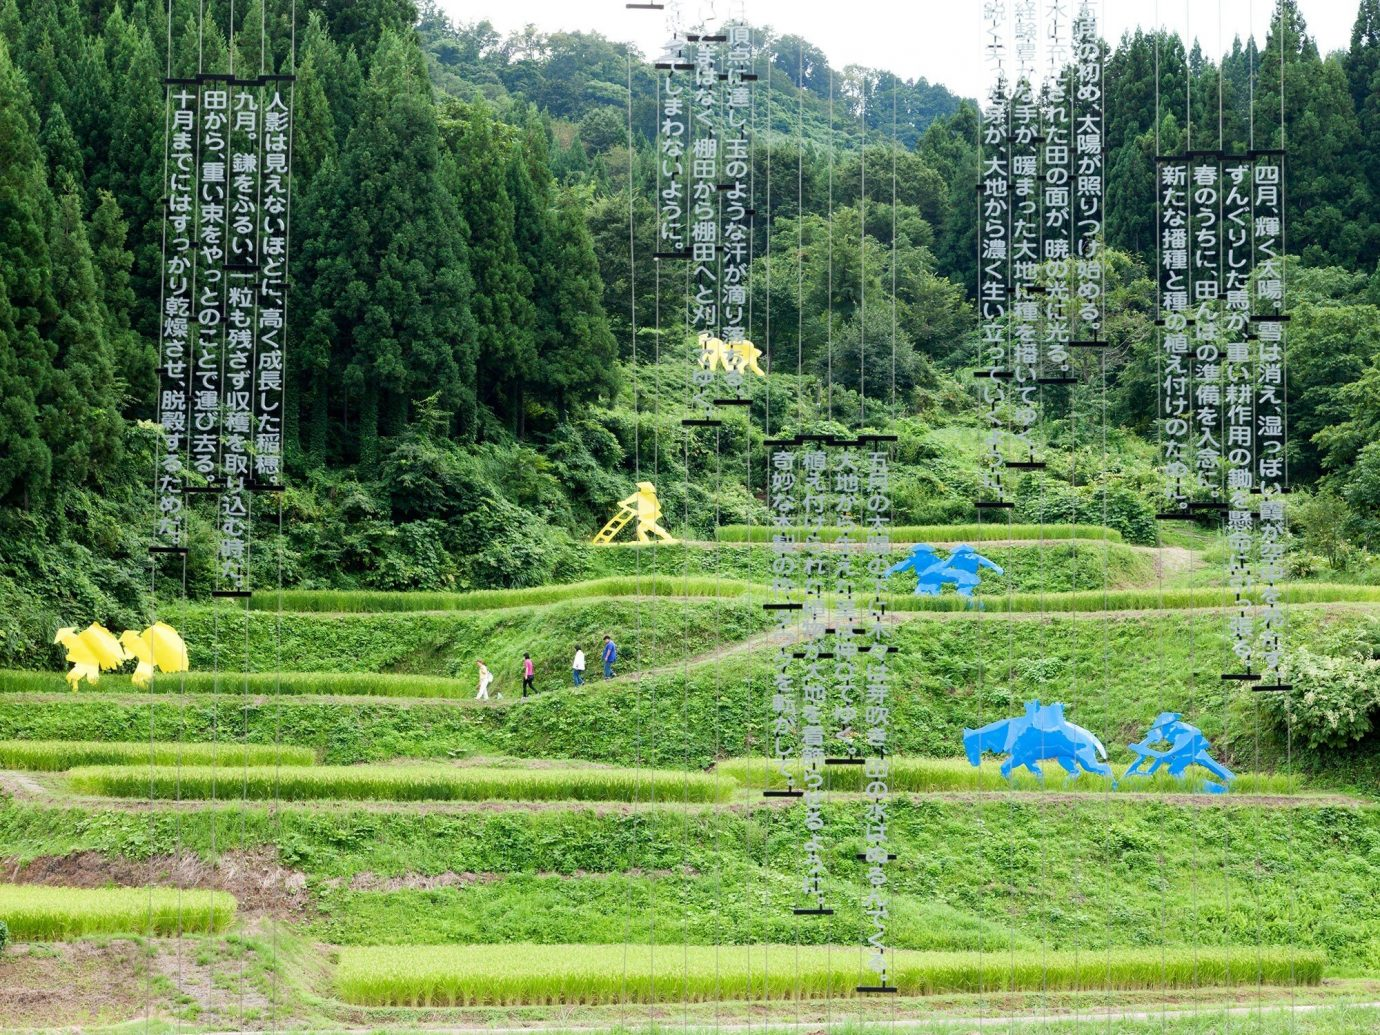 Arts + Culture tree grass outdoor habitat green pasture ecosystem natural environment meadow paddy field field rural area Forest woodland Garden flower landscape pond agriculture lawn Farm